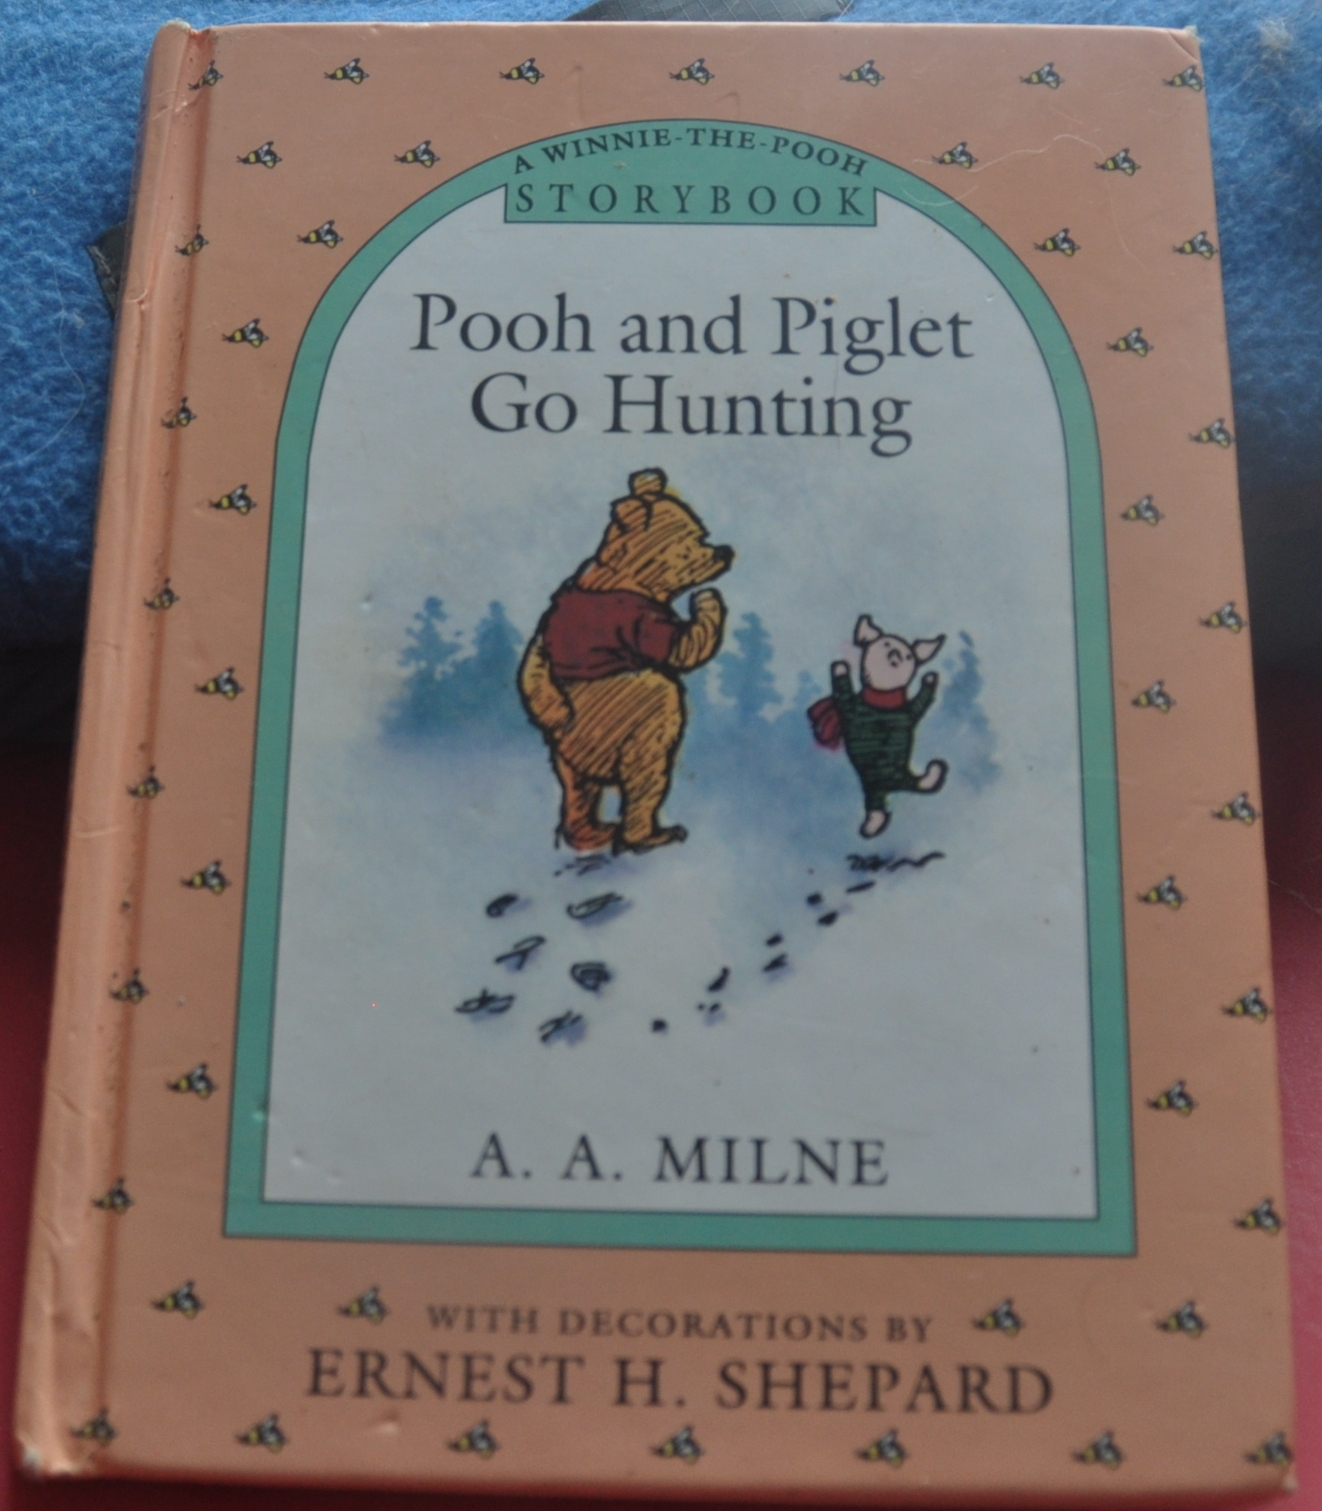 Primary image for Winnie the Pooh Bear Mystery of the Tracks - Pooh & Piglet Go Hunting Story Book